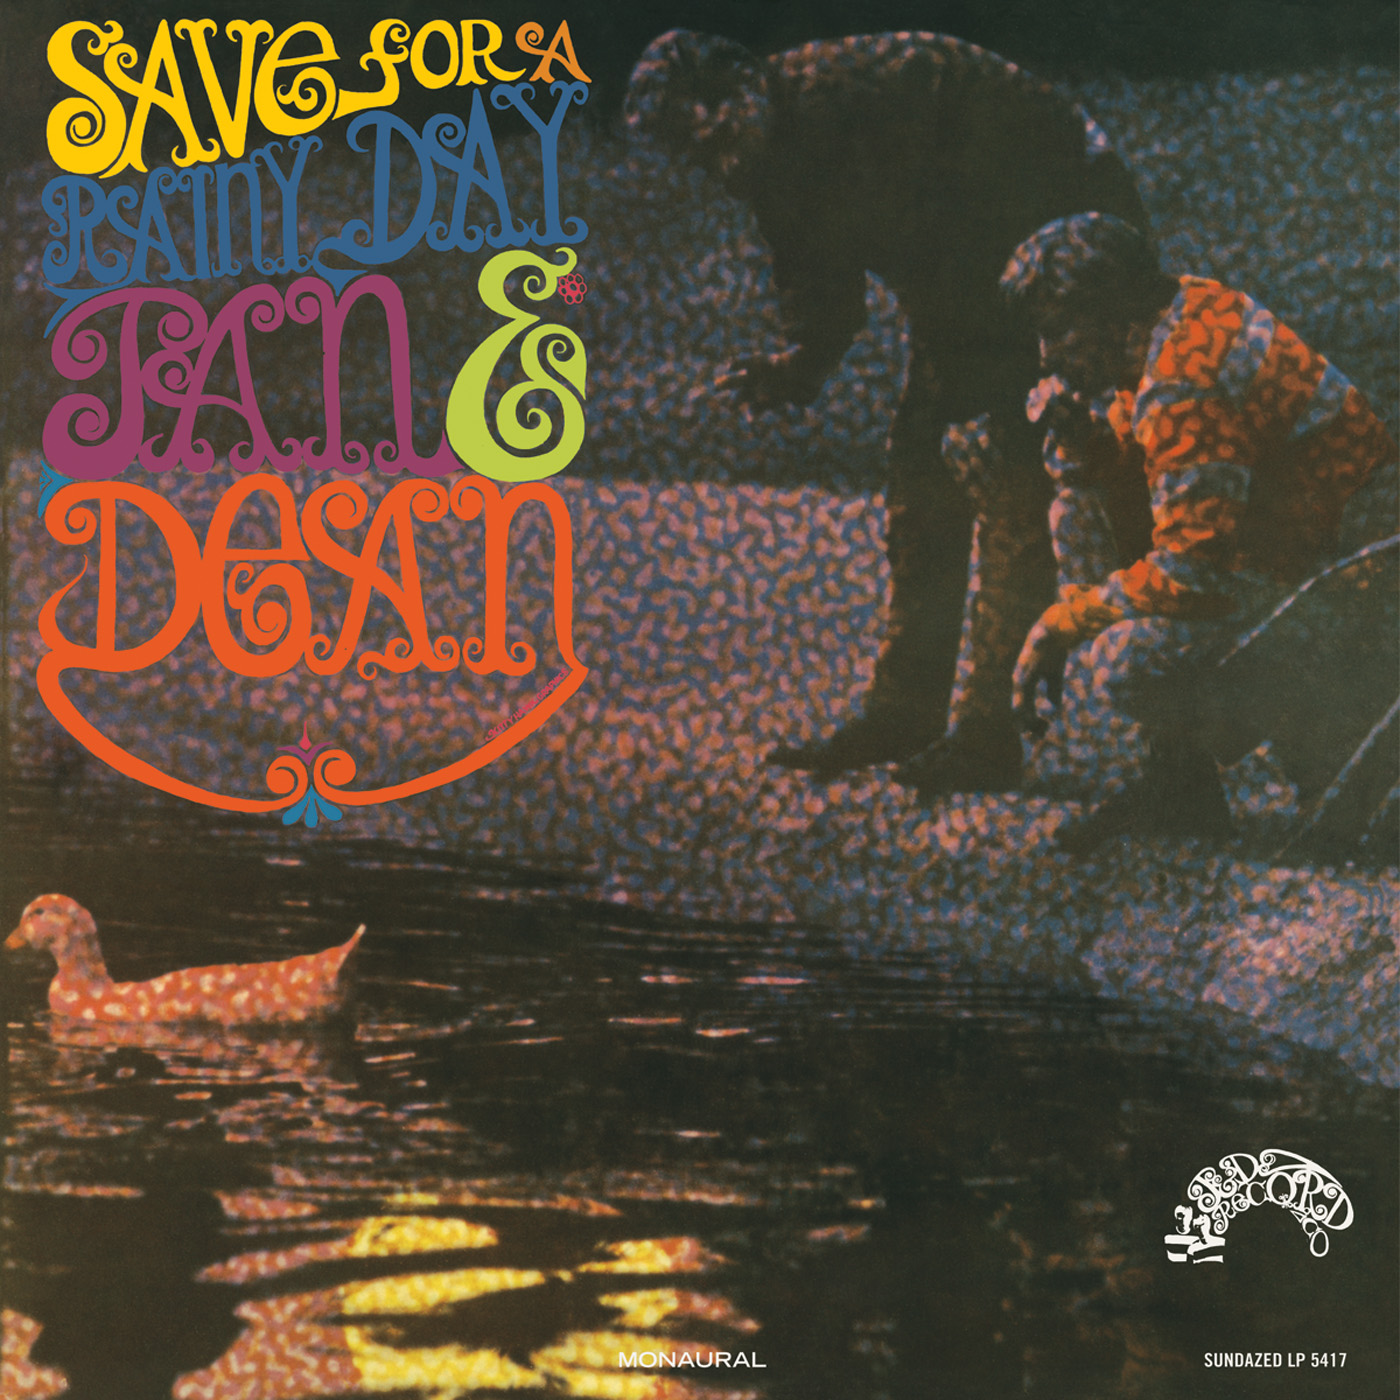 Jan & Dean - Save for a Rainy Day -LIMITED EDITION MONO- LP